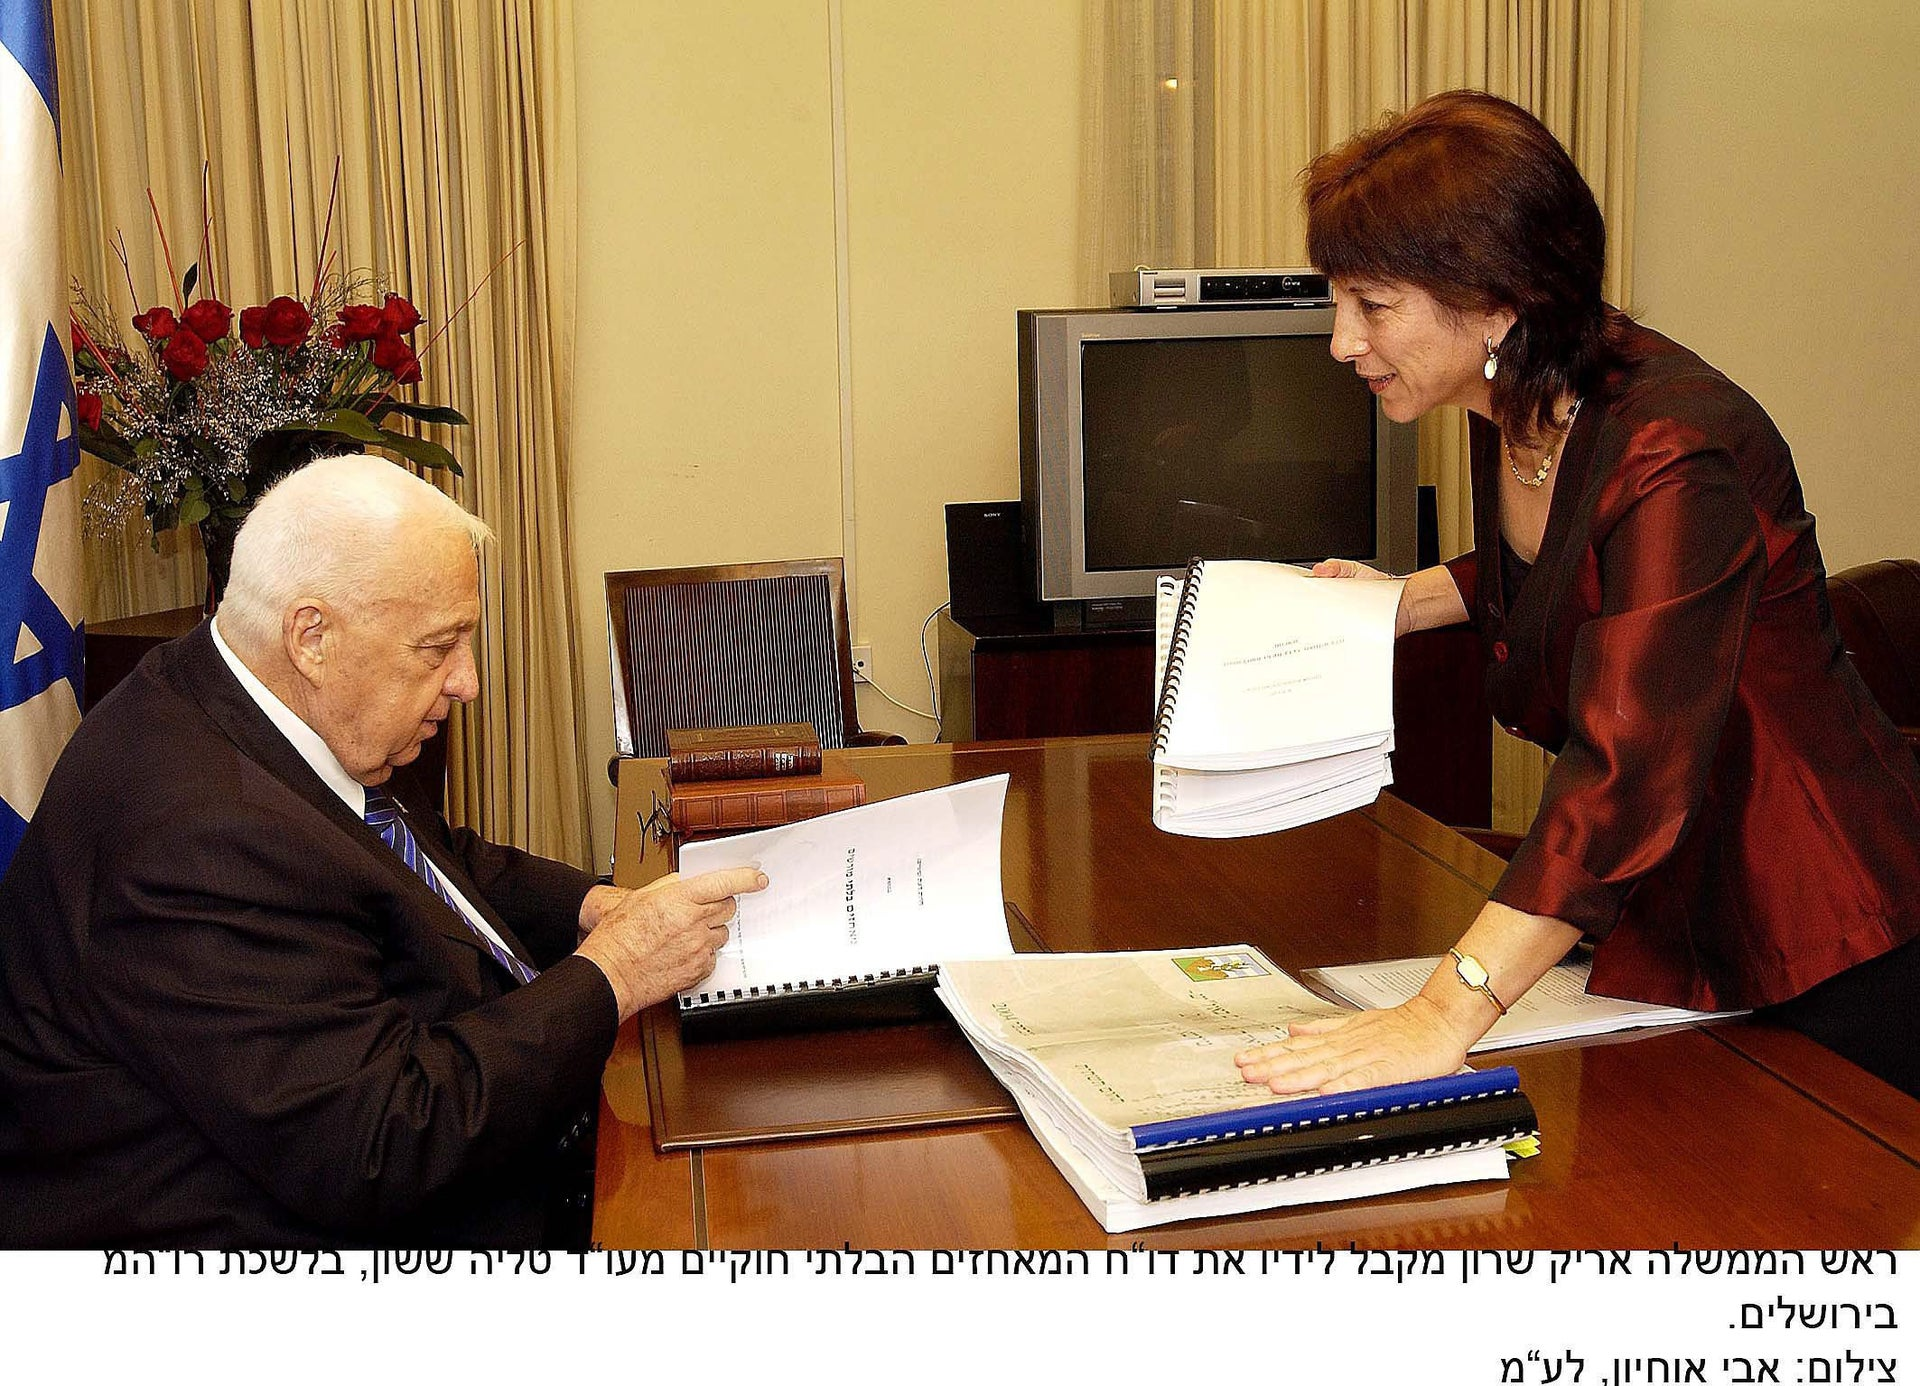 Sasson presents her report on settlement outposts to Prime Minister Sharon, in 2005.